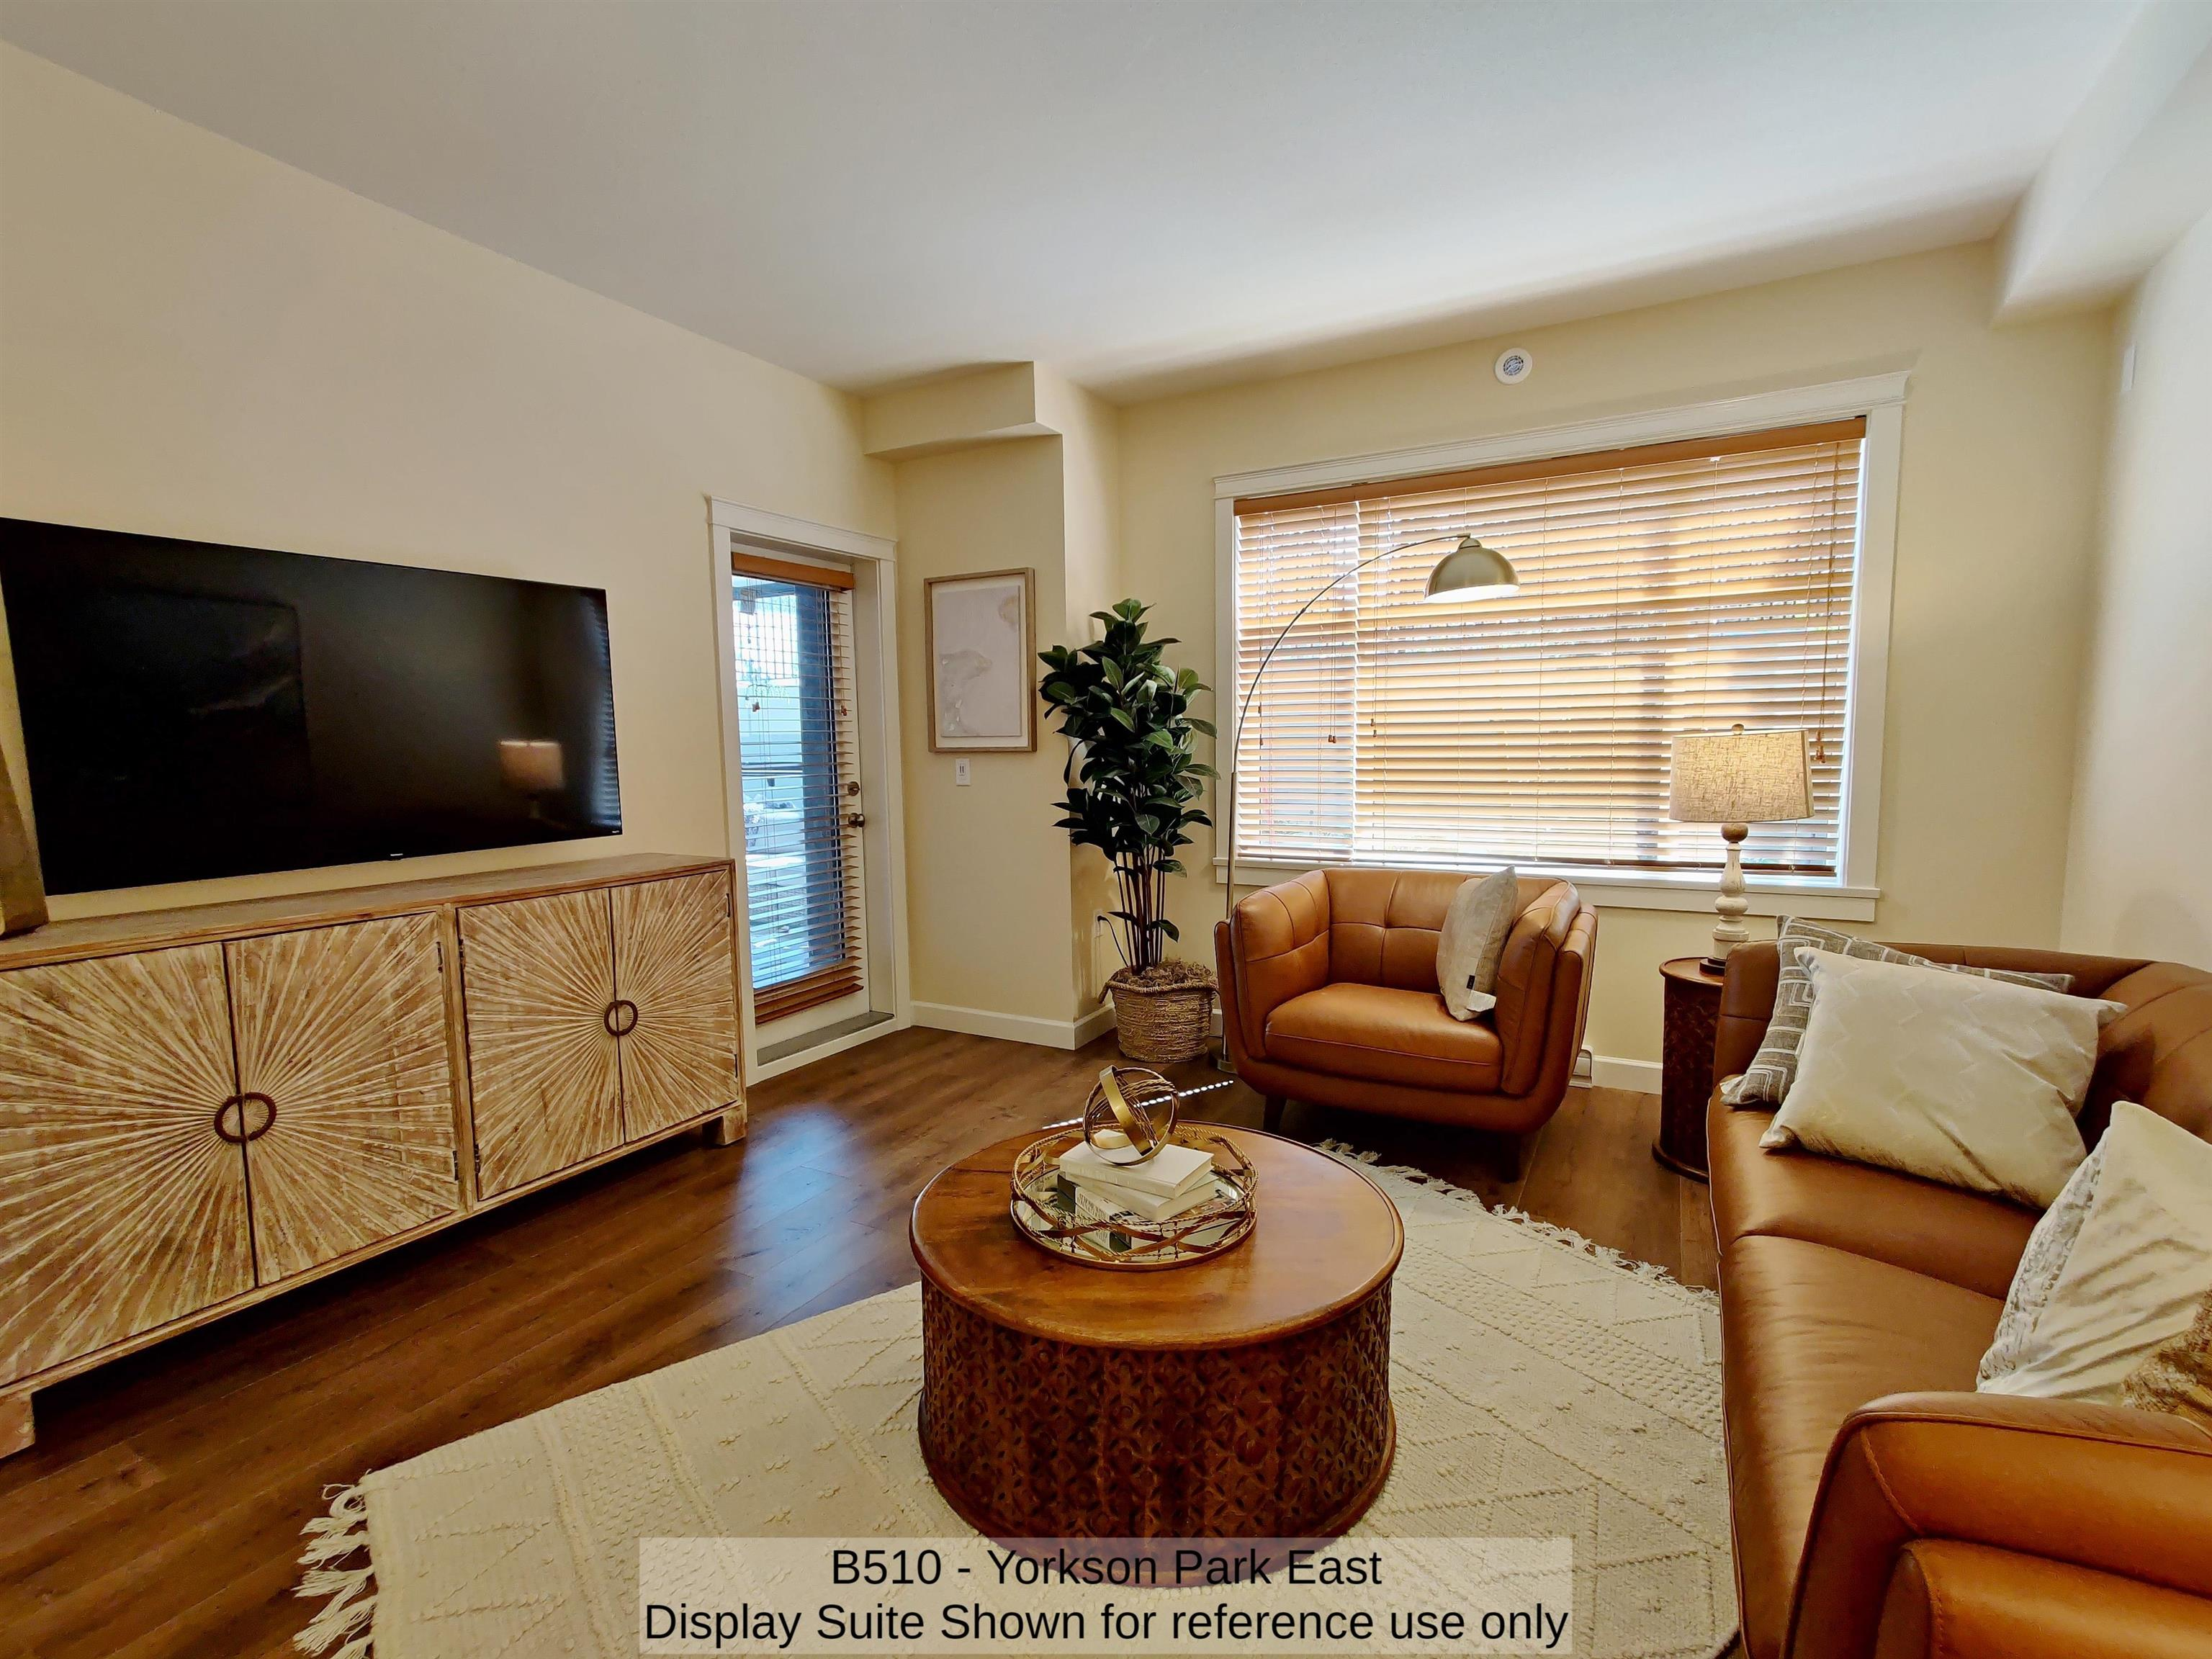 510 8538 203A STREET - Willoughby Heights Apartment/Condo for sale, 1 Bedroom (R2562641) - #15